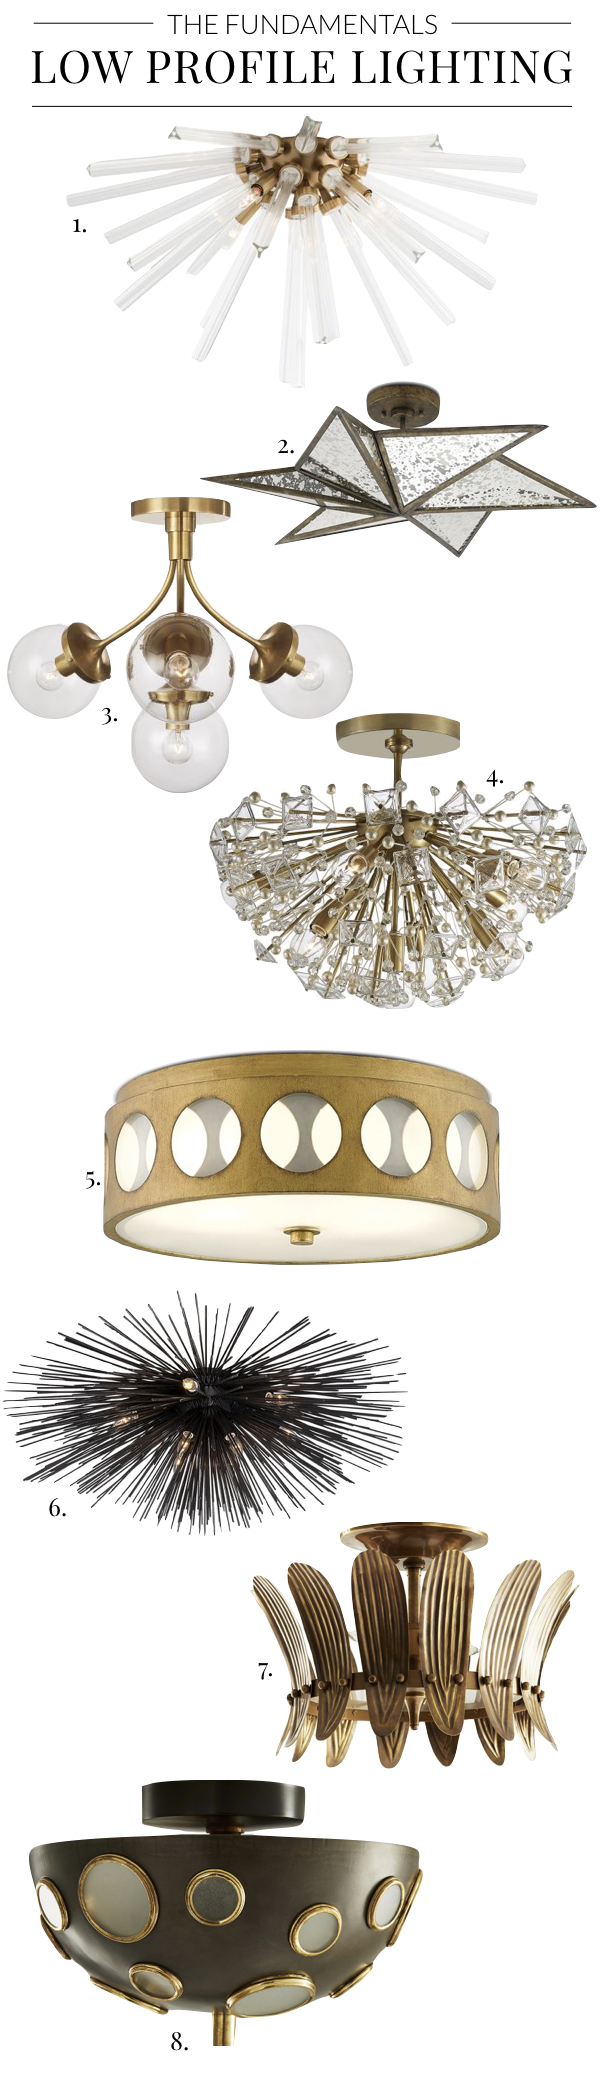 Light Fixtures for Low Ceilings, Statement Lighting, Flush Mount Light Fixtures, Unique Ceiling Lighting